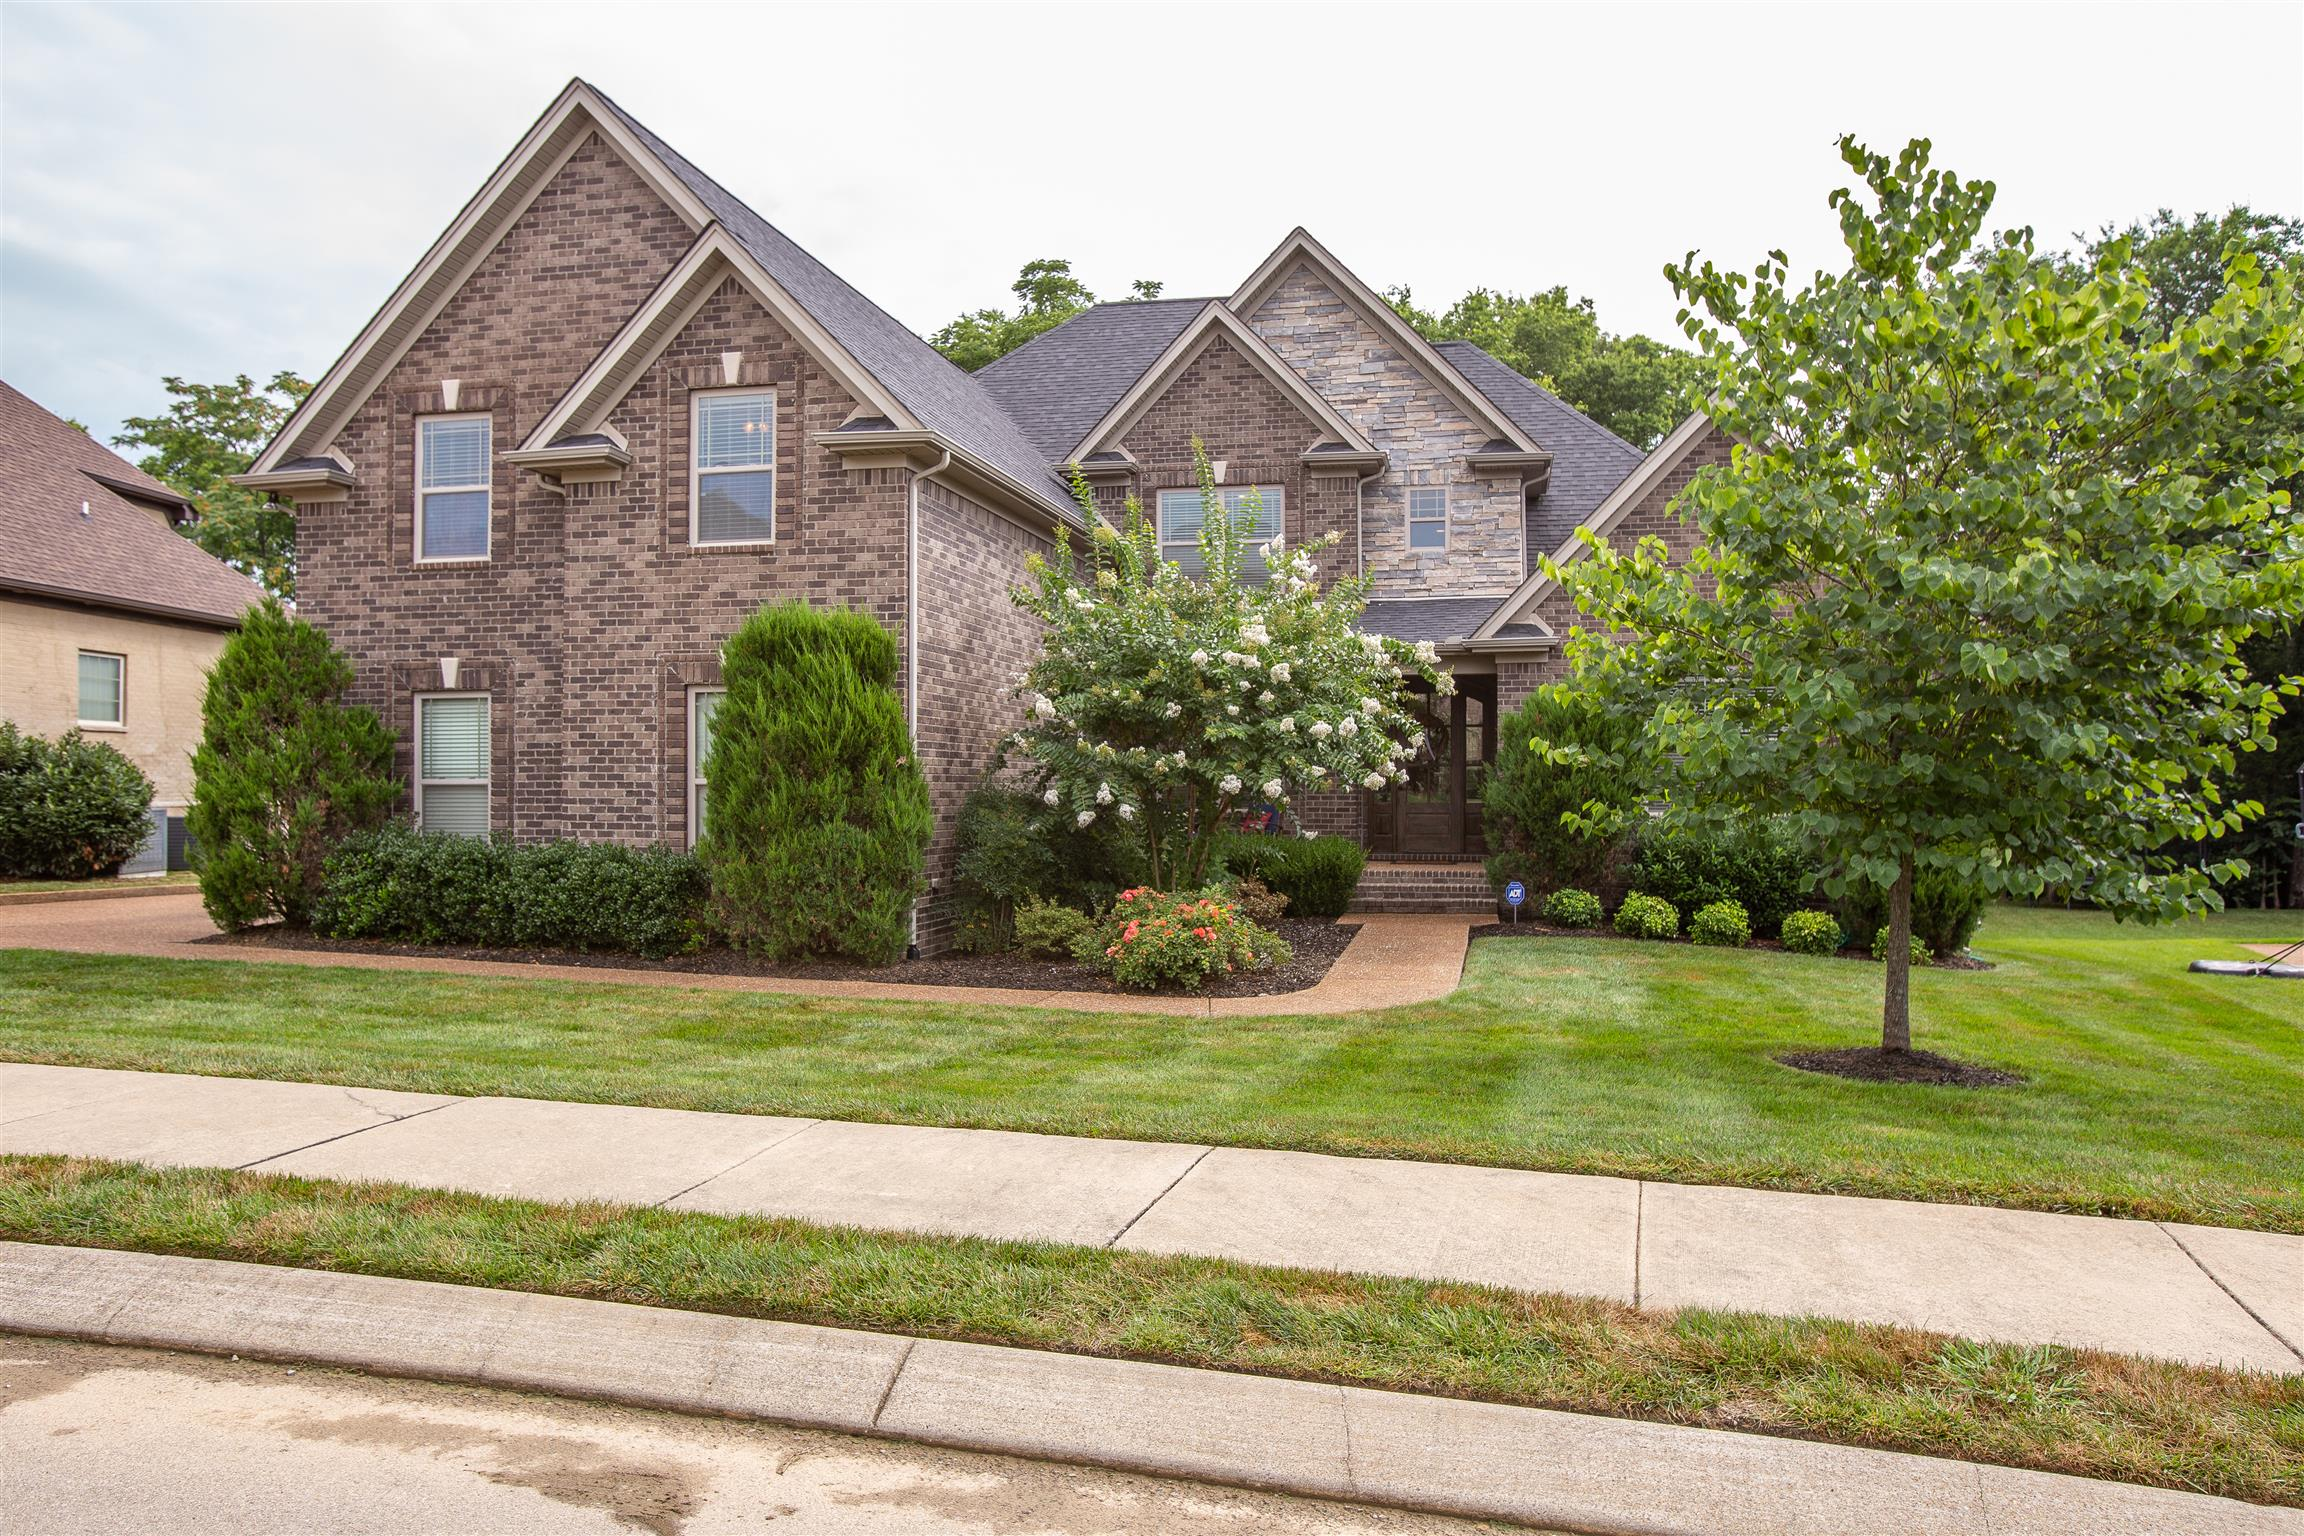 2034 Brisbane Dr, Spring Hill, TN 37174 - Spring Hill, TN real estate listing